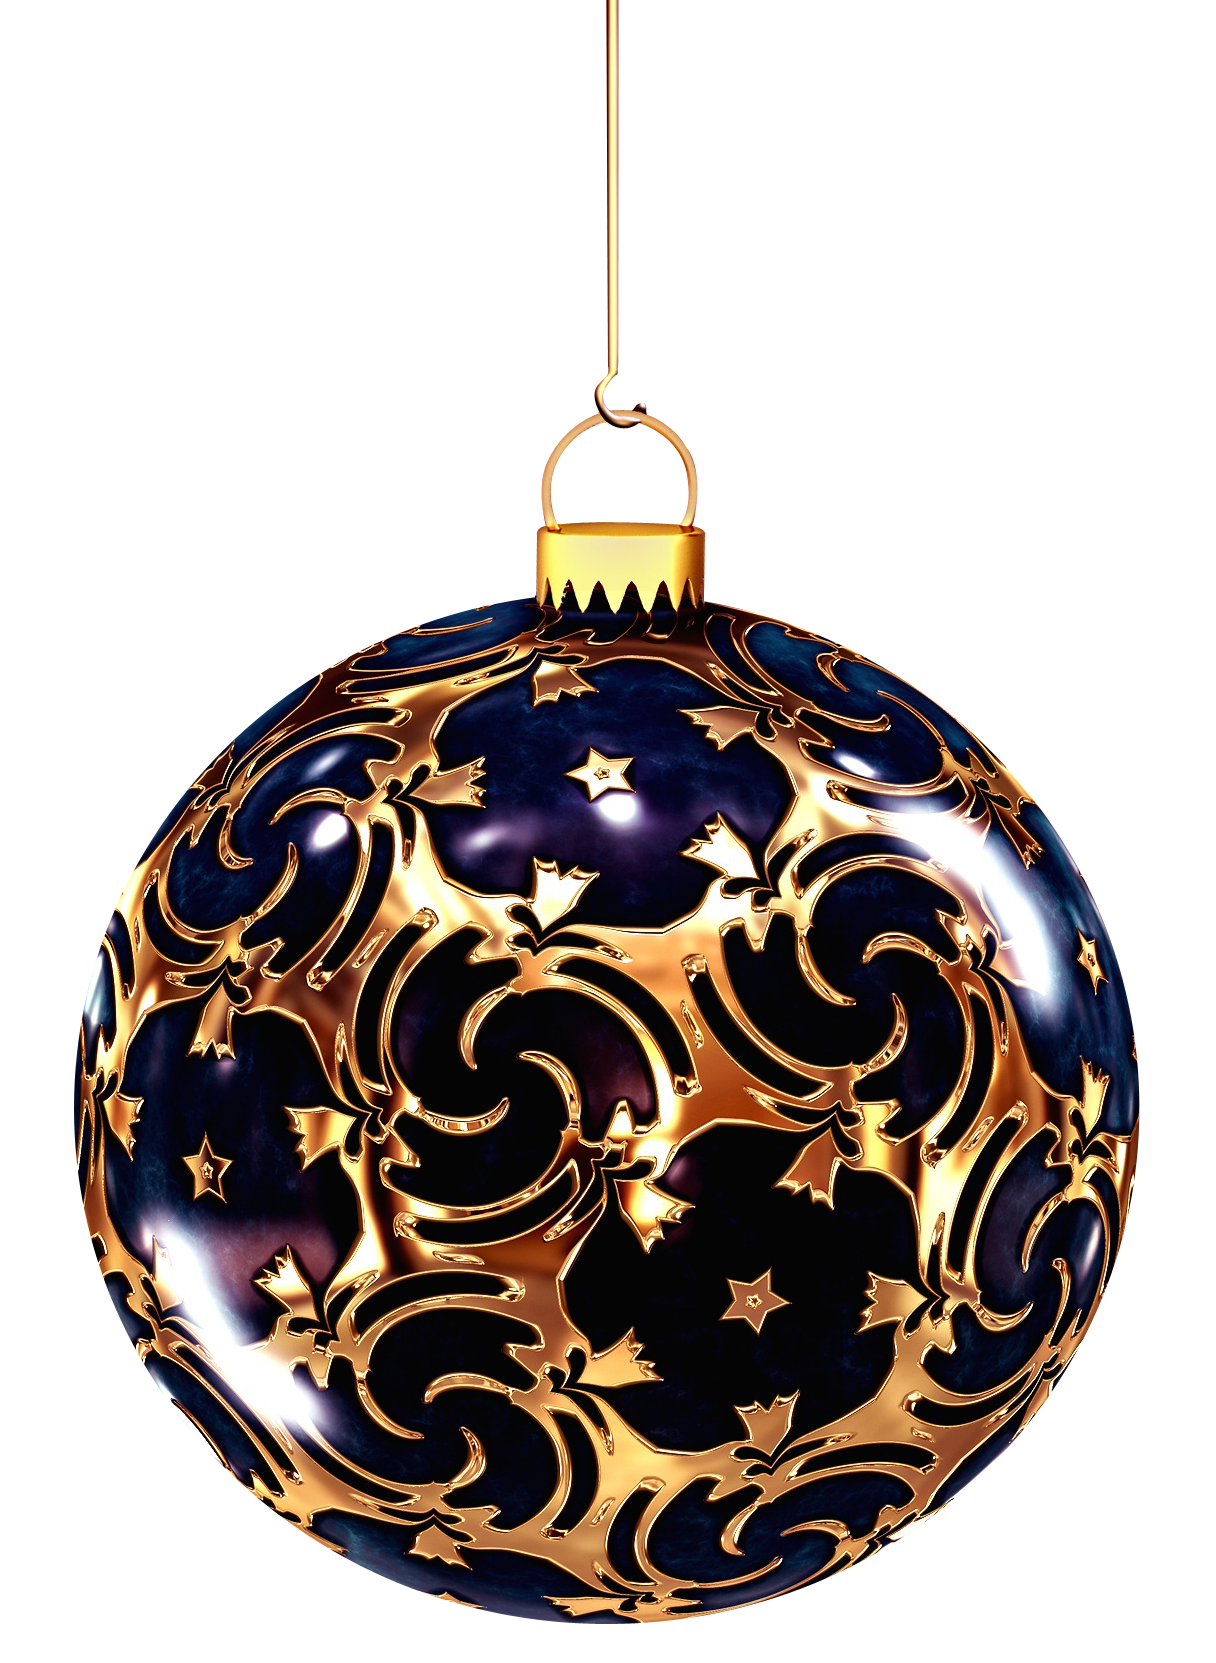 Christmas Bauble with Ornaments PNG Image